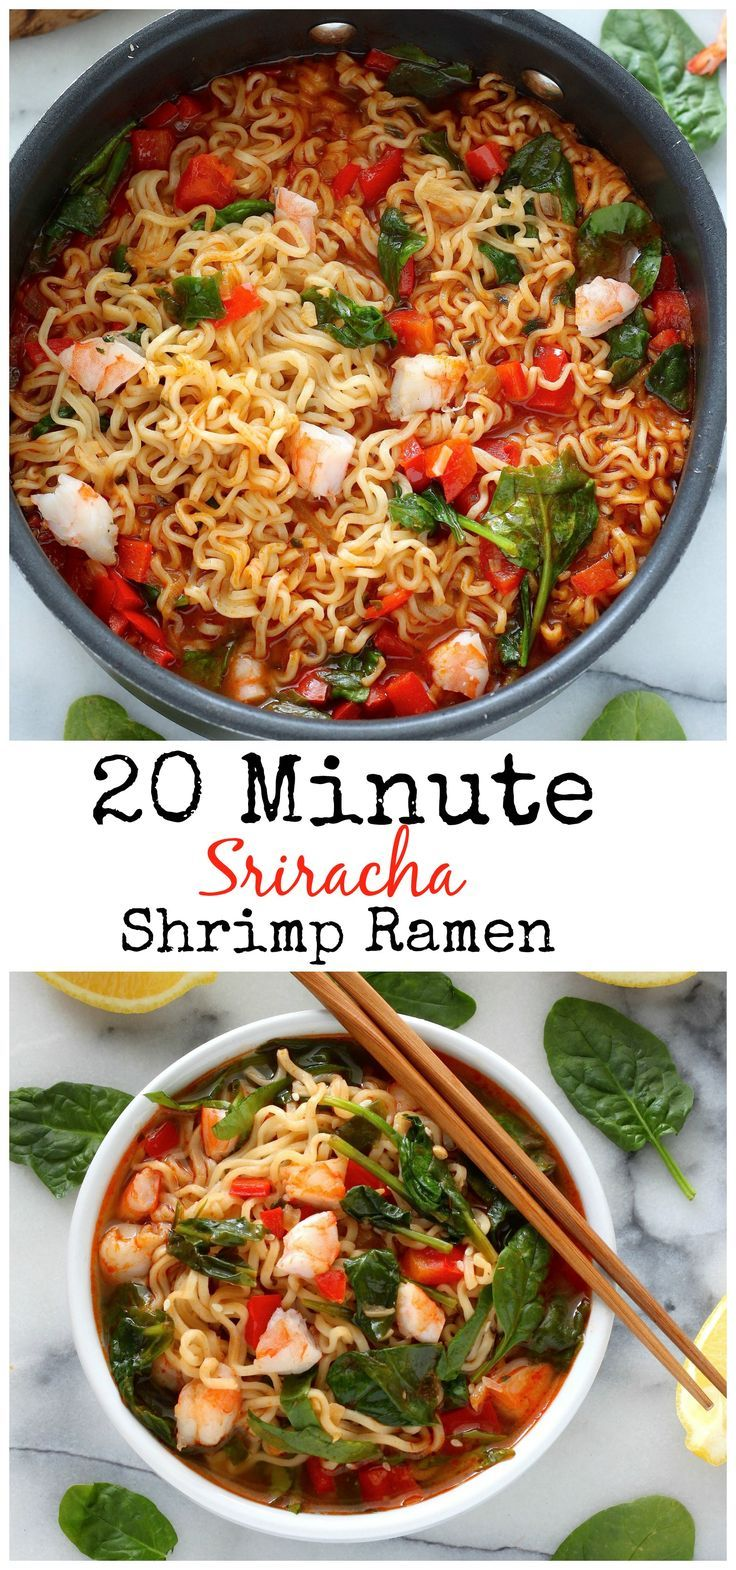 20 Minute Sriracha Shrimp Ramen Recipe With Images Recipes